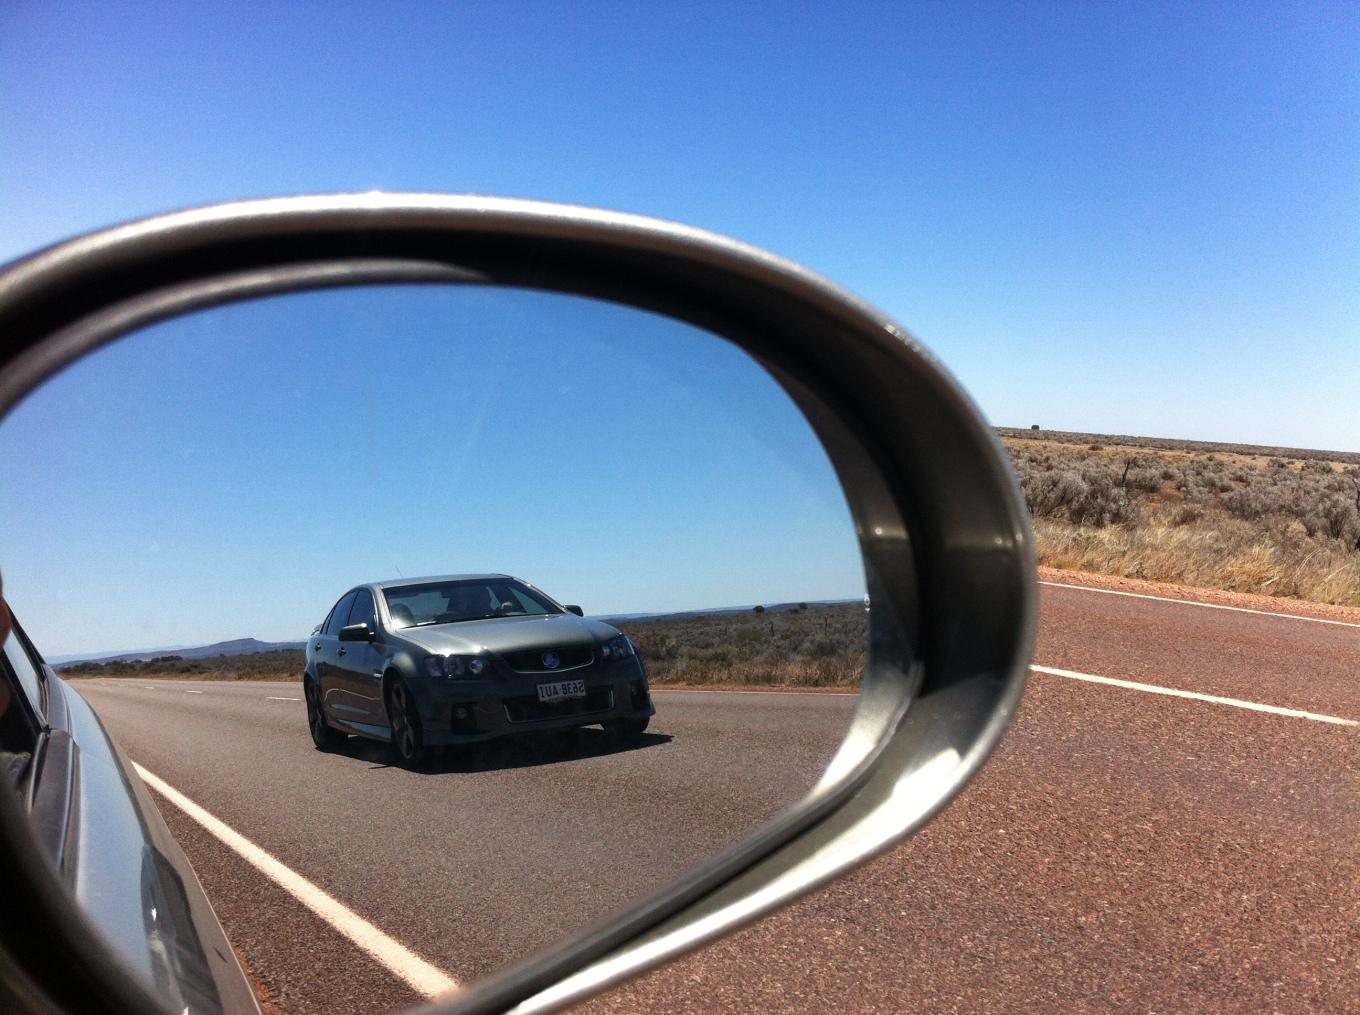 objects in the rear view mirror may appear closer than they really are